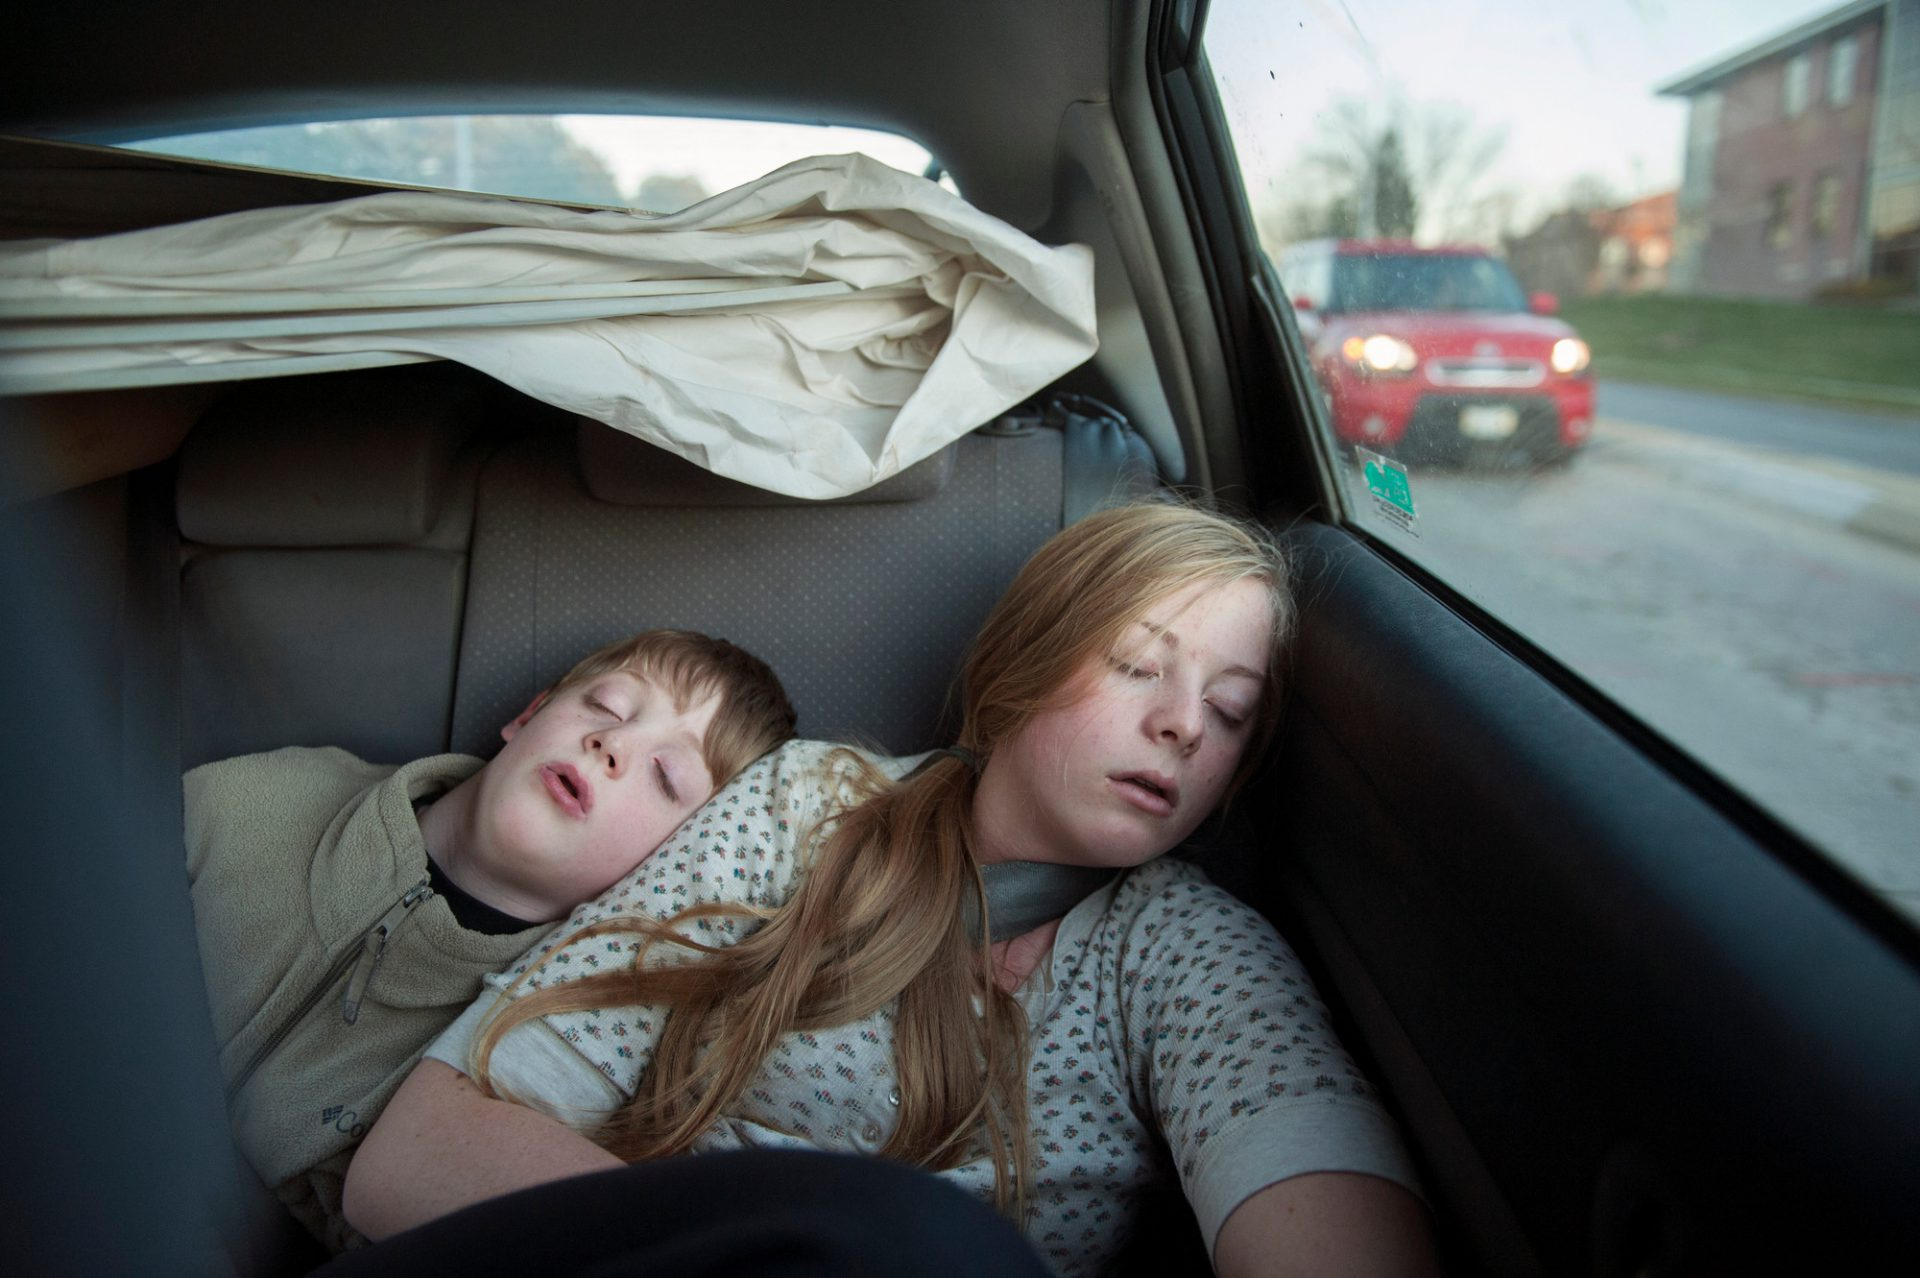 Photo: A brother and sister sleep during a car ride.